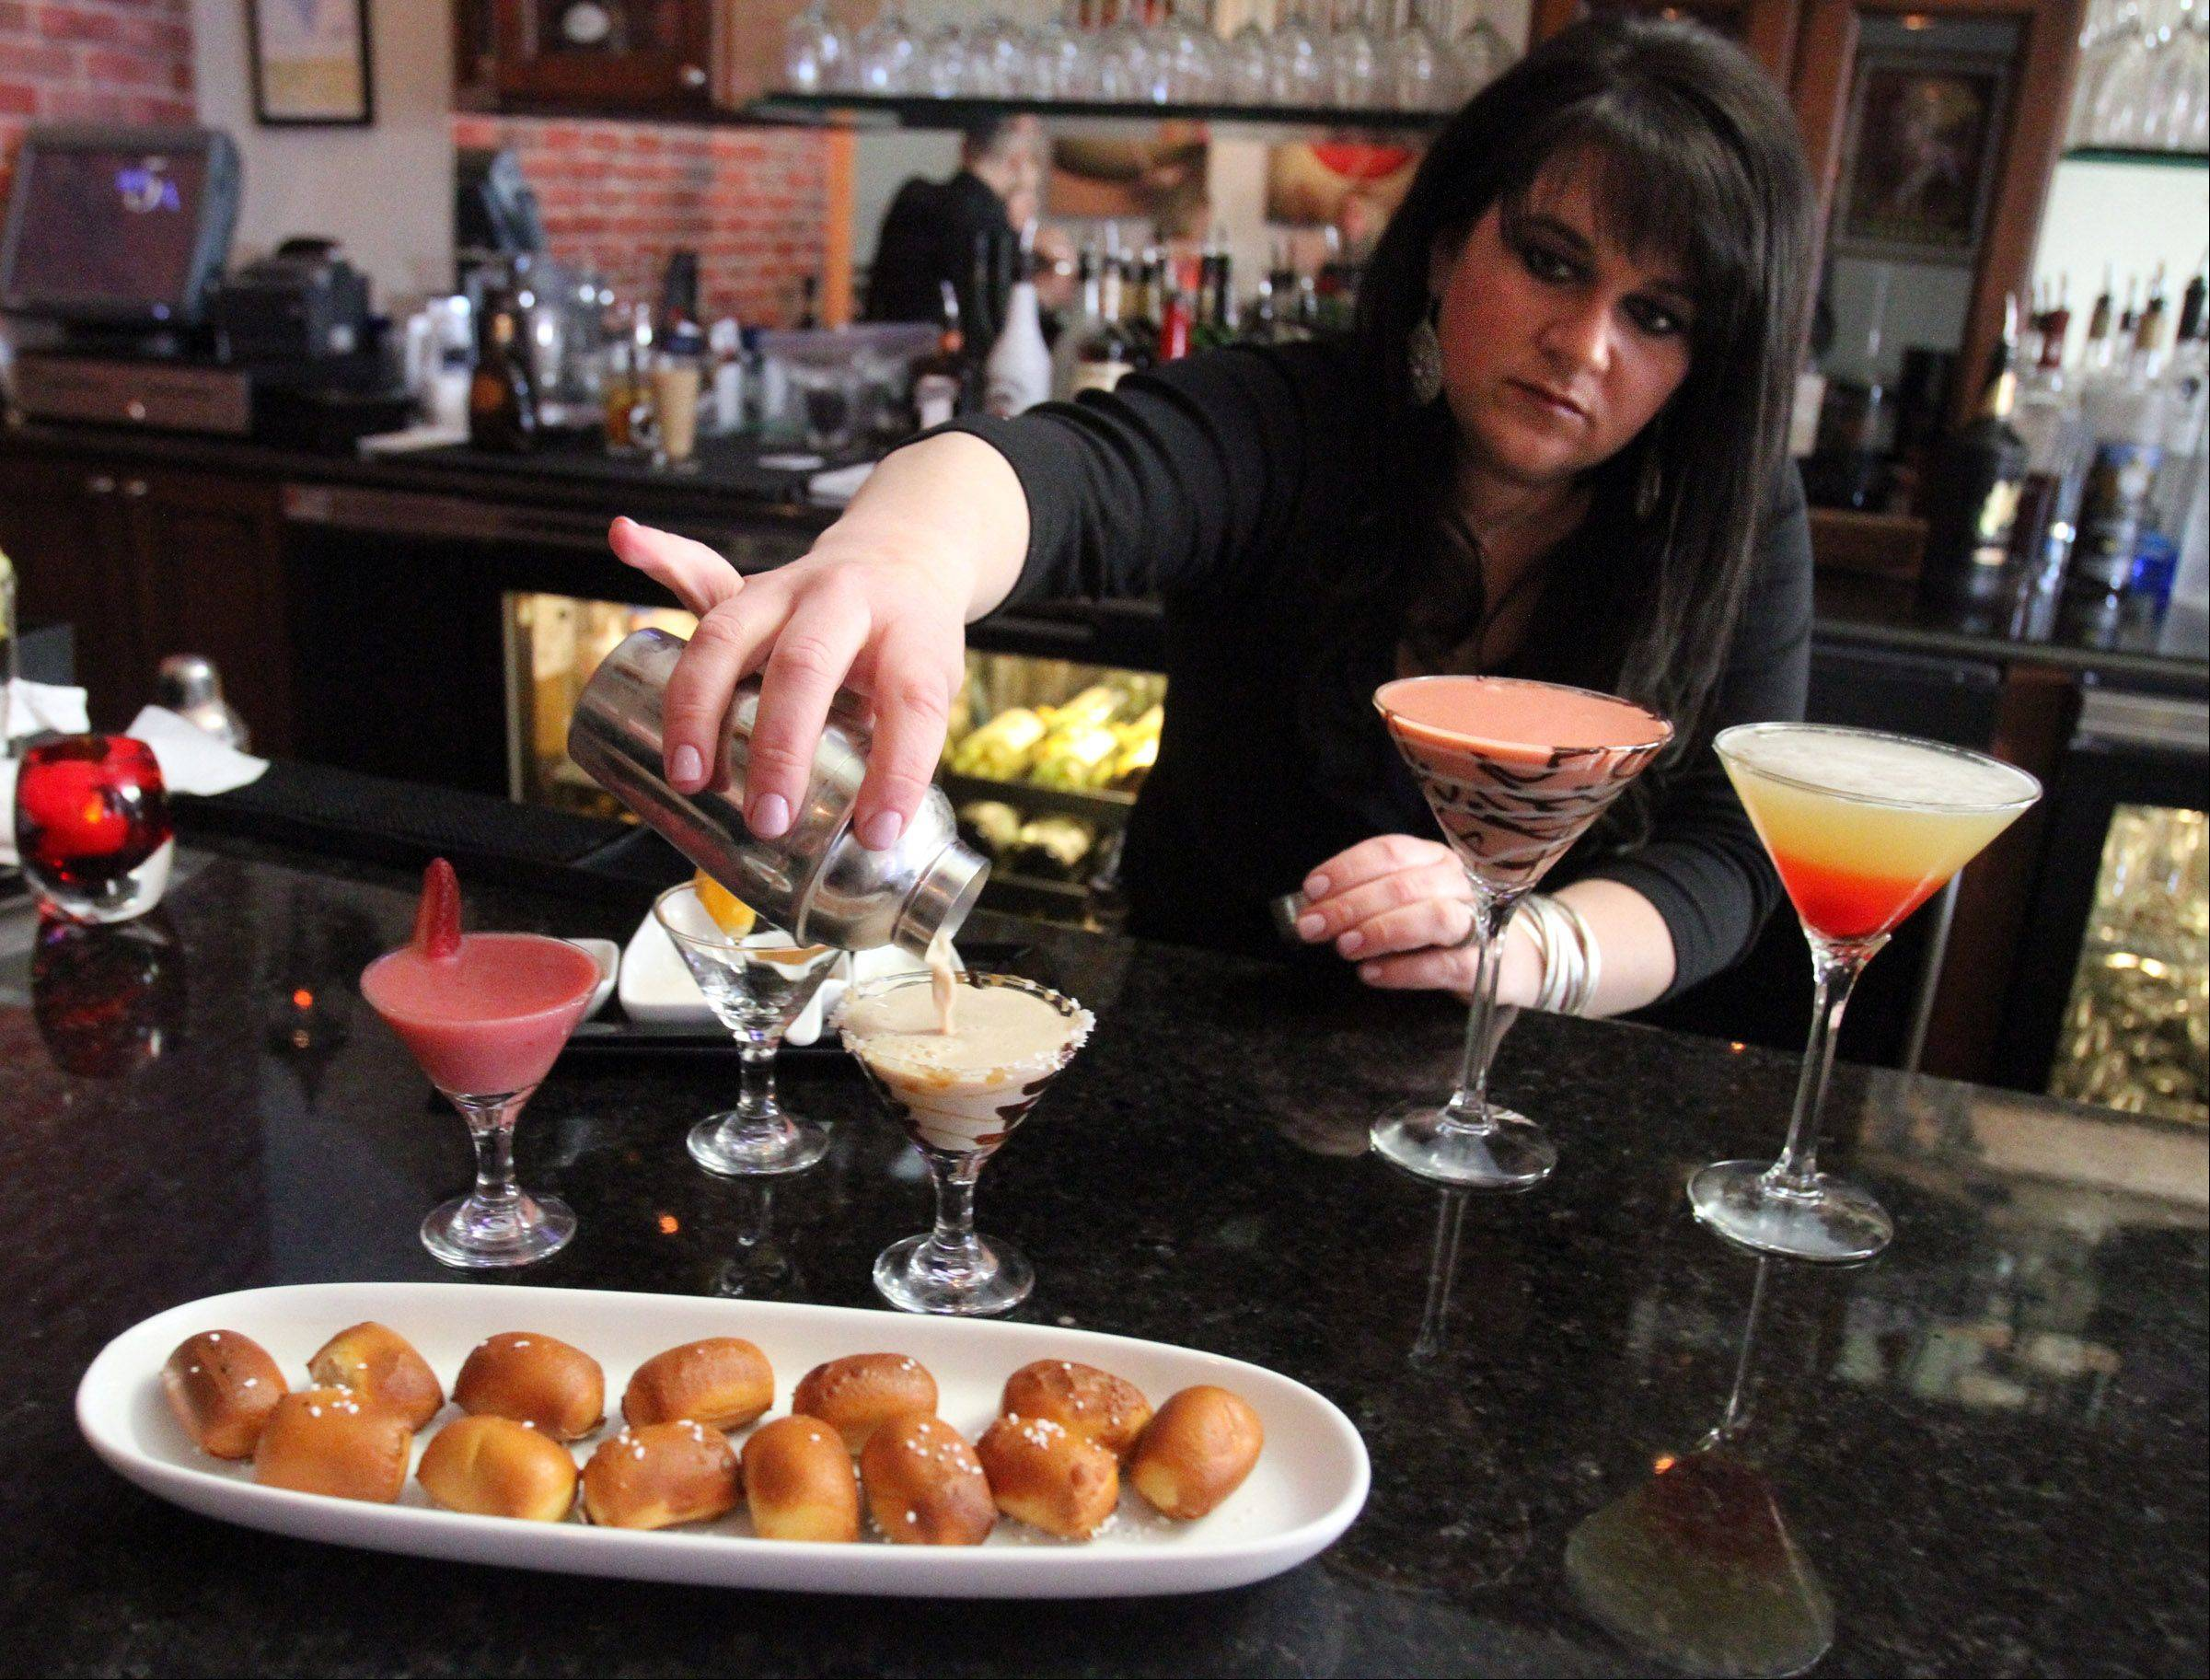 Bartender Shannon Longabaugh pours a mini salt-carmel-mocha martini with pretzel bites in the foreground at Strawberry Moon martini bar in Wauconda.